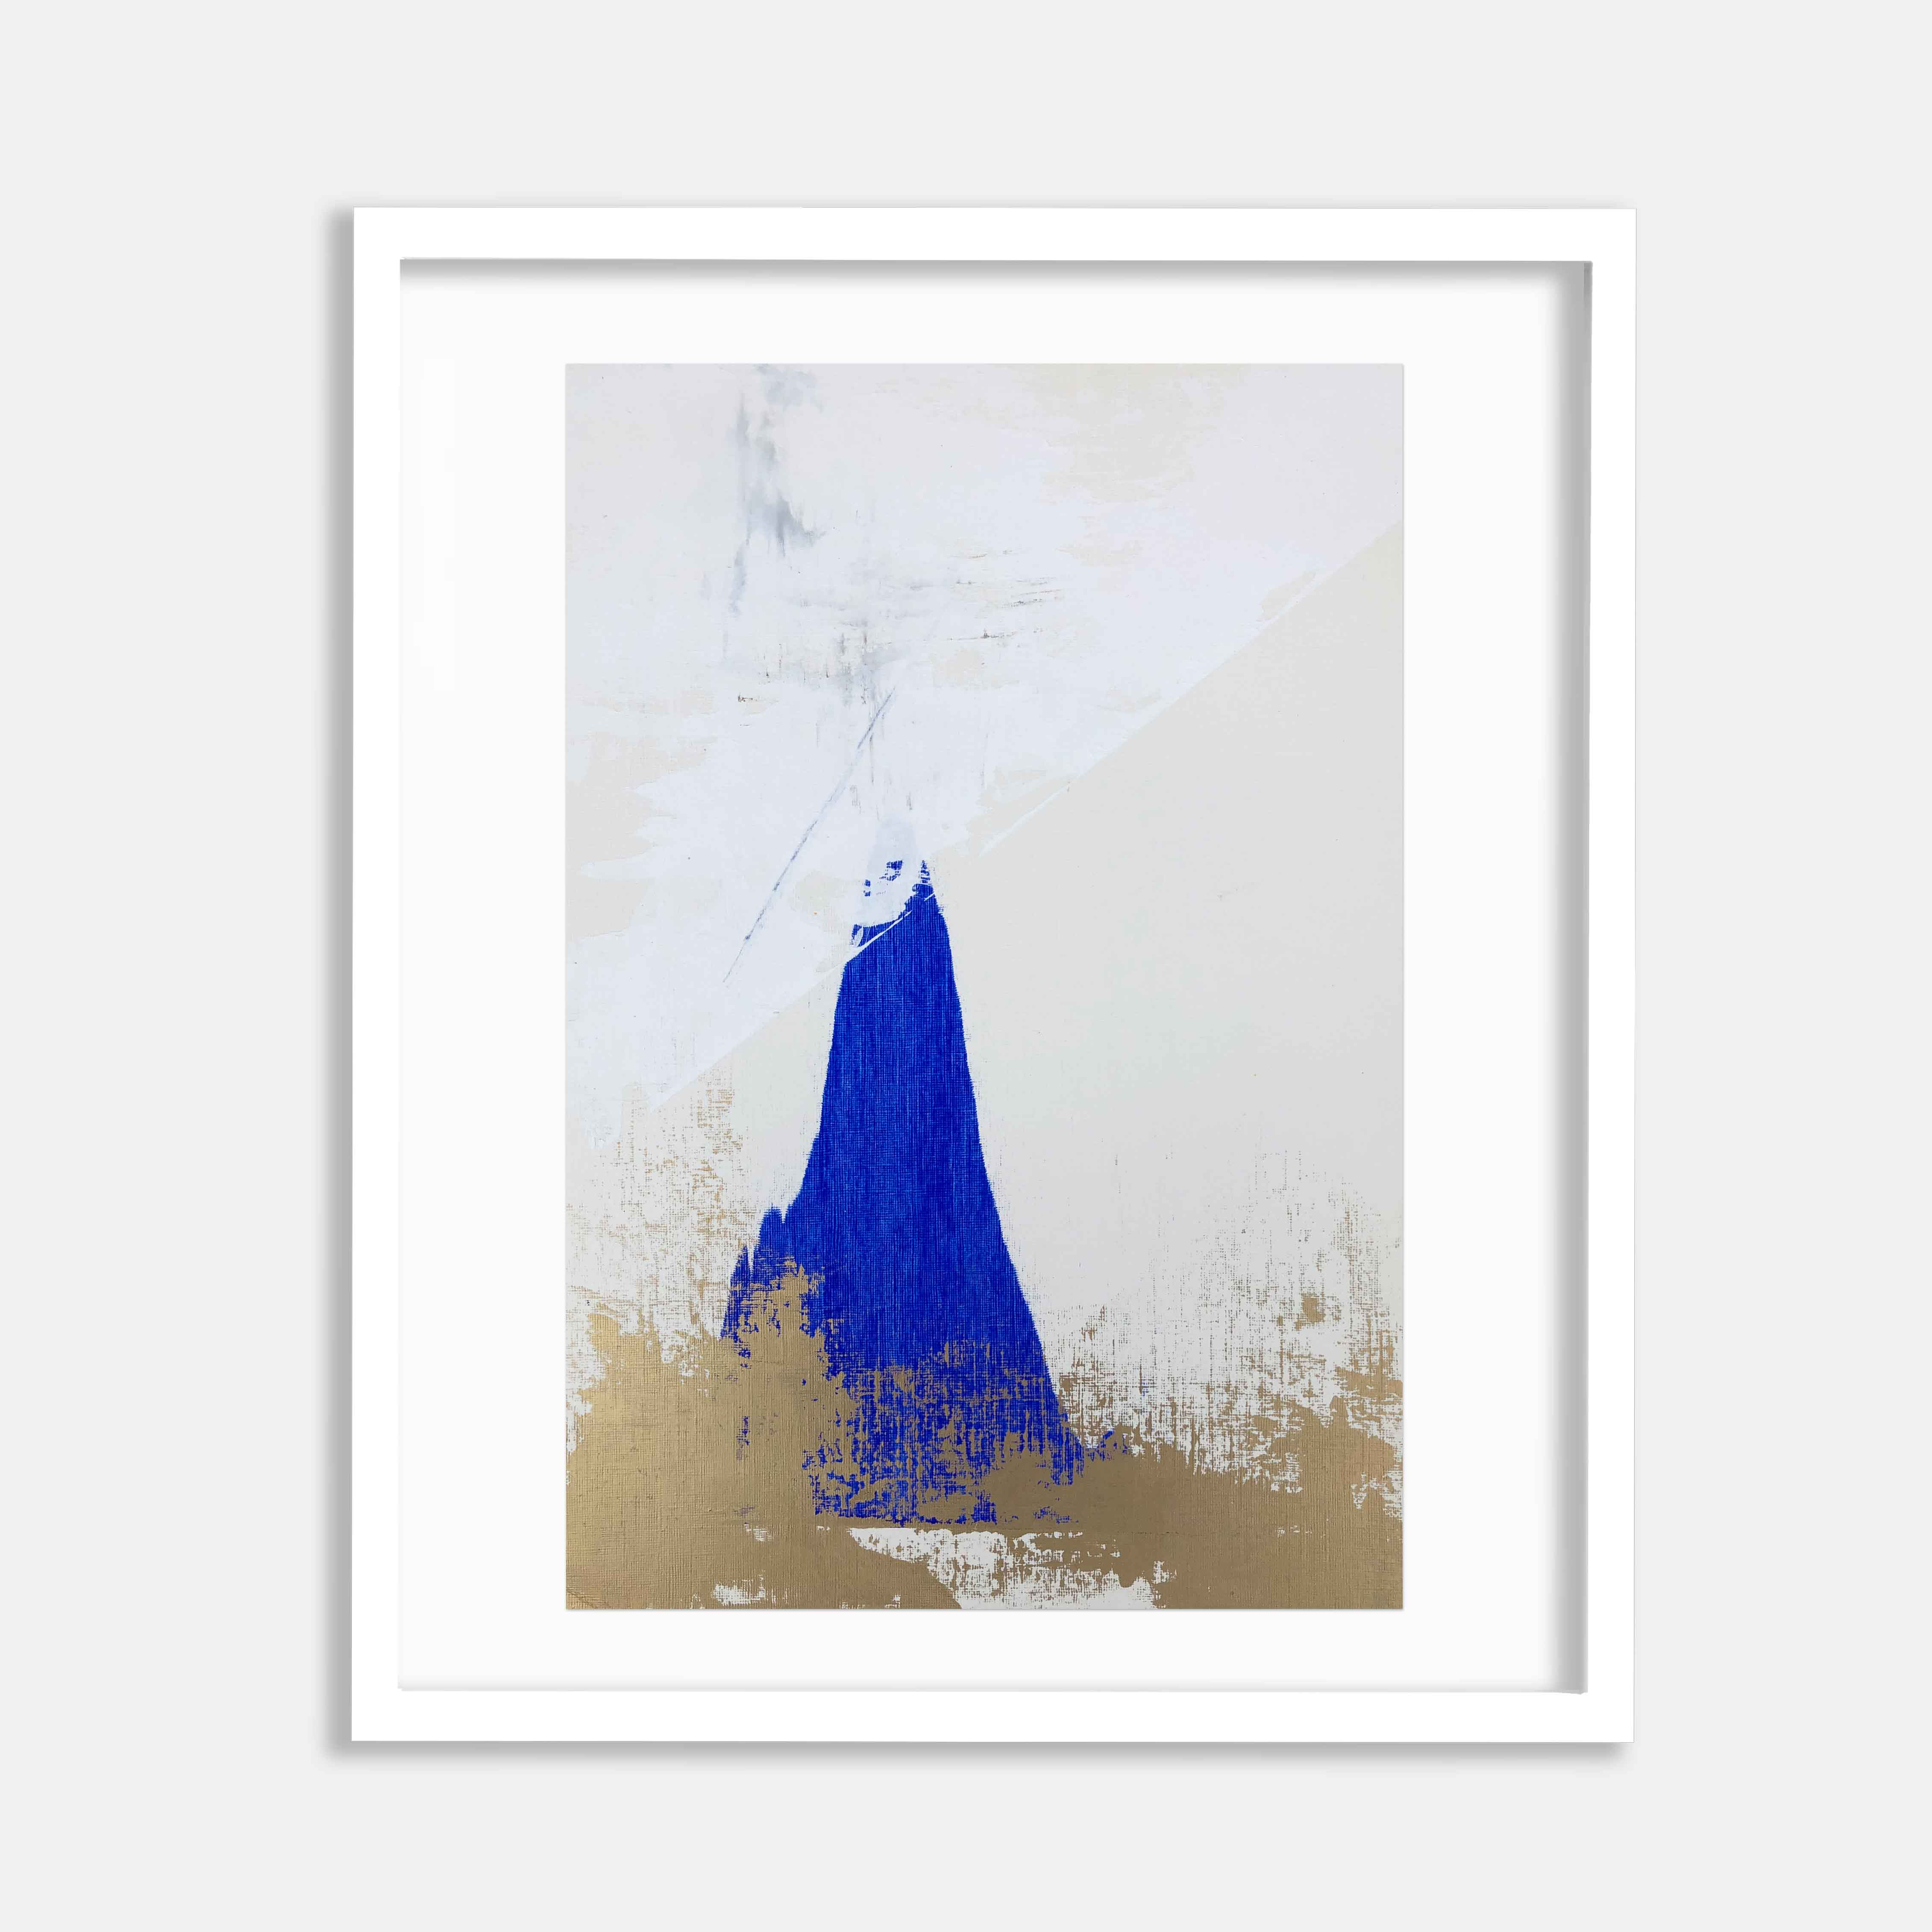 Untitled (White Painting 18-23)